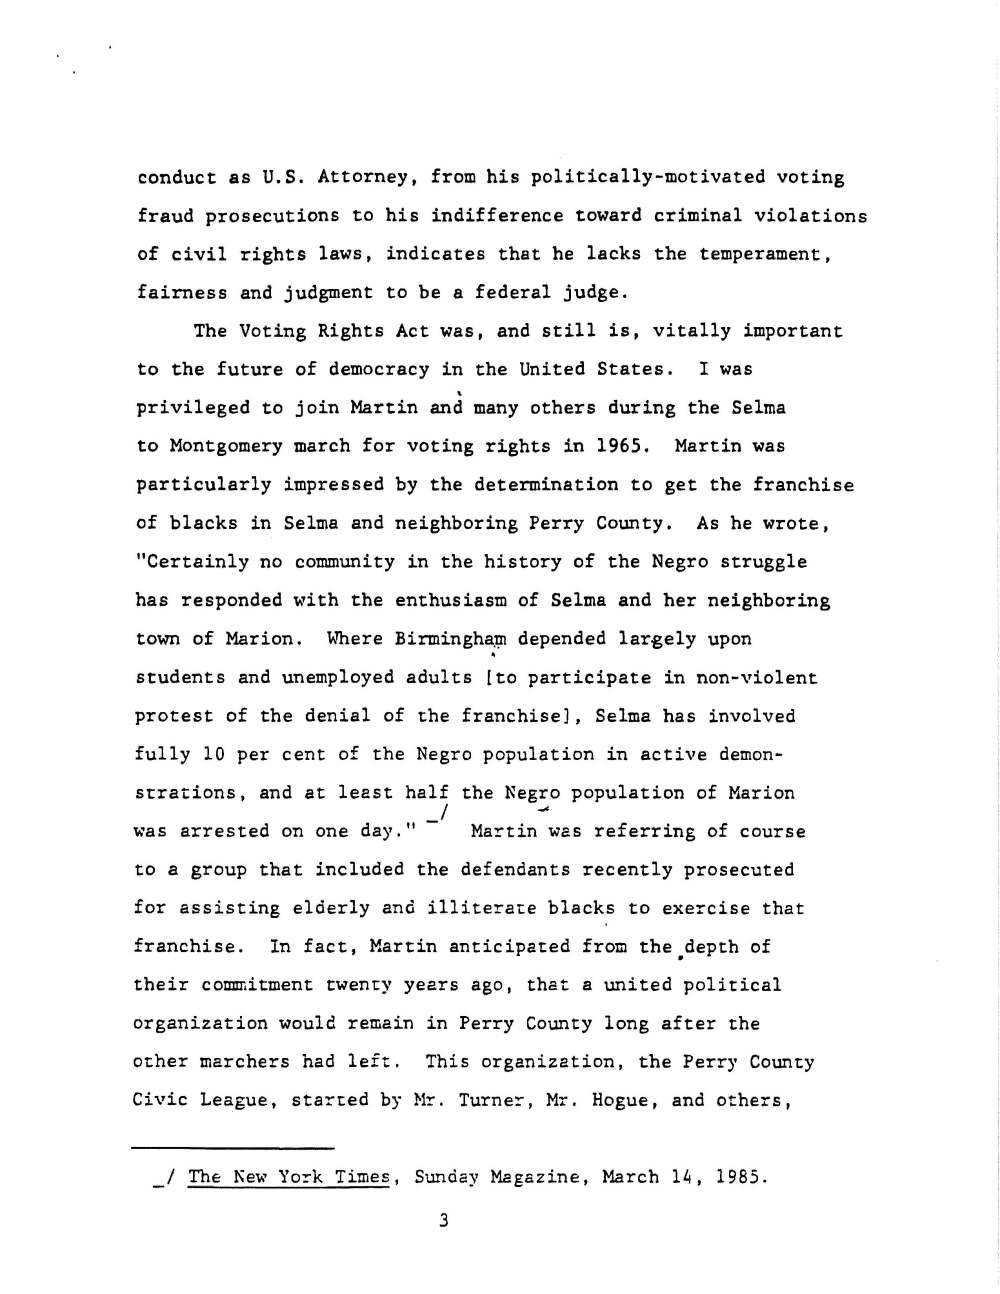 scott-king-1986-letter-and-testimony-signed_page_04